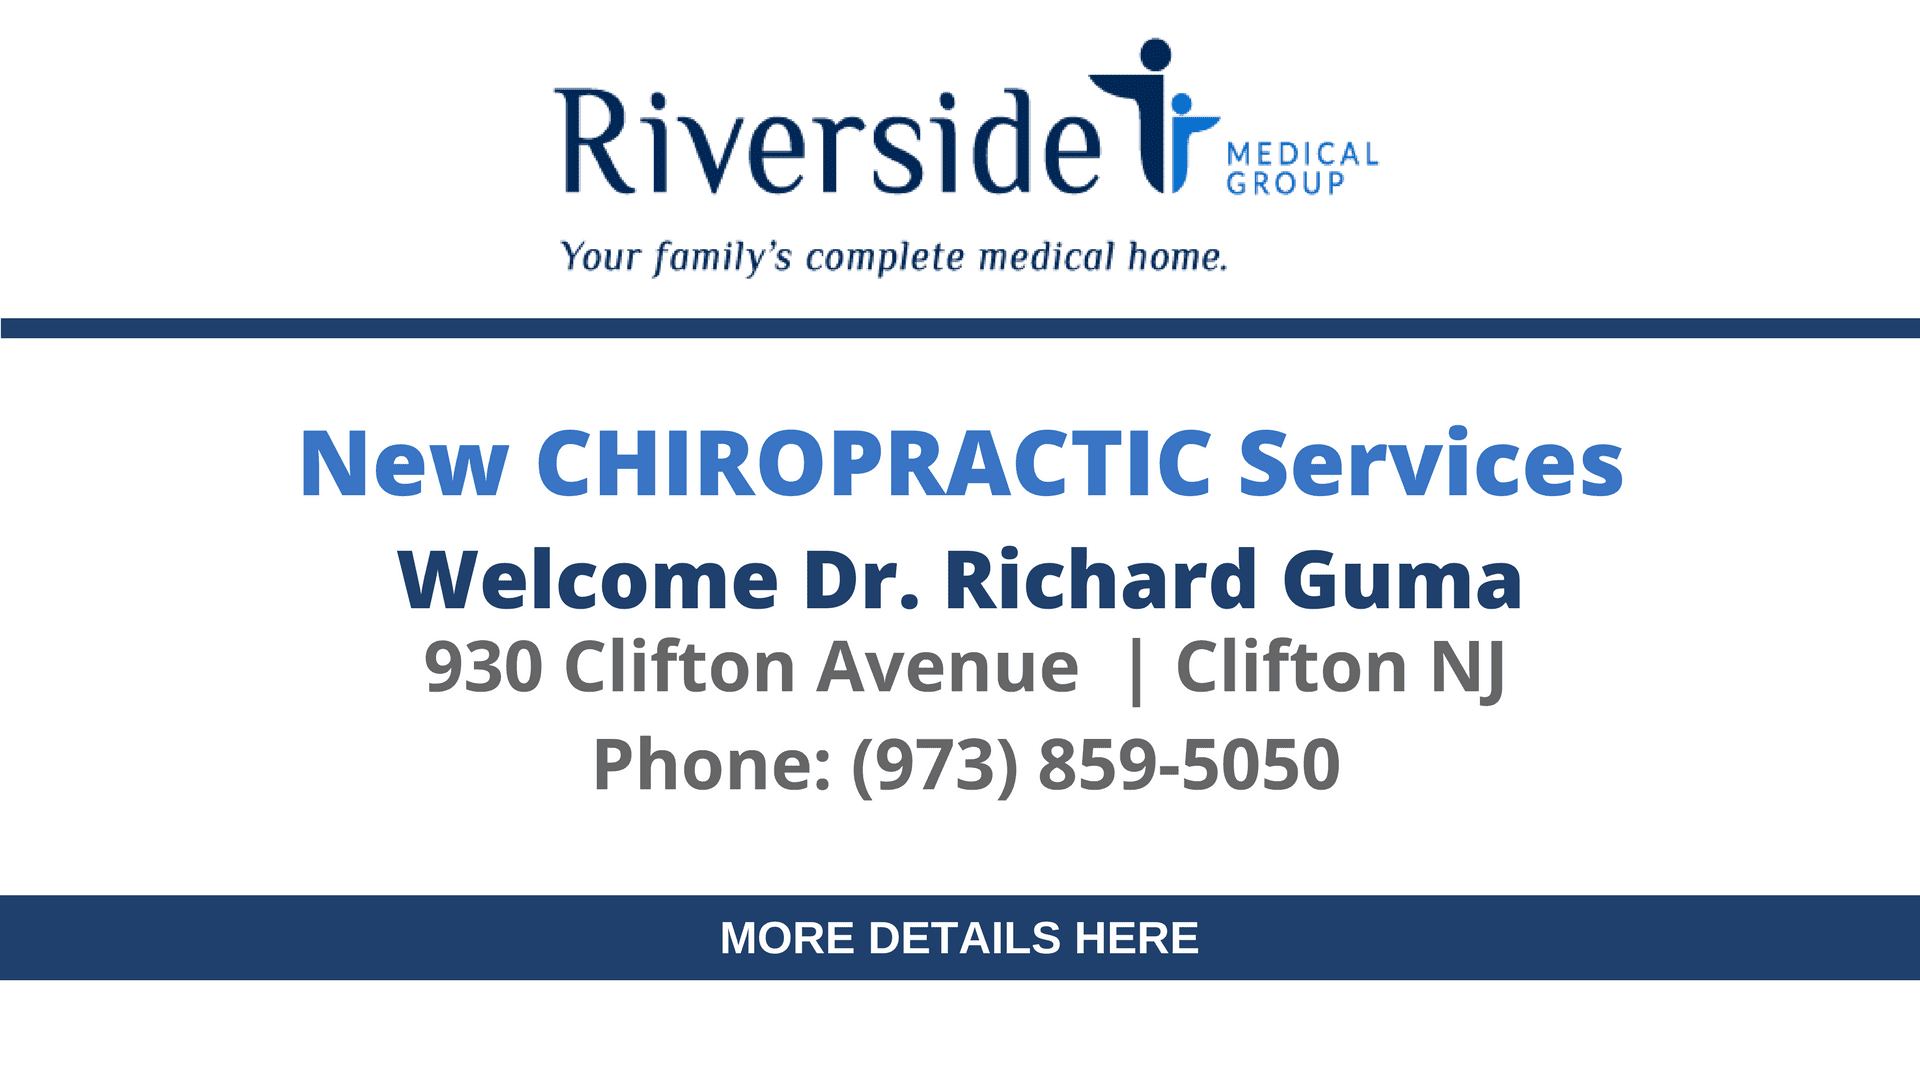 Riverside Now Providing Chiropractic Services